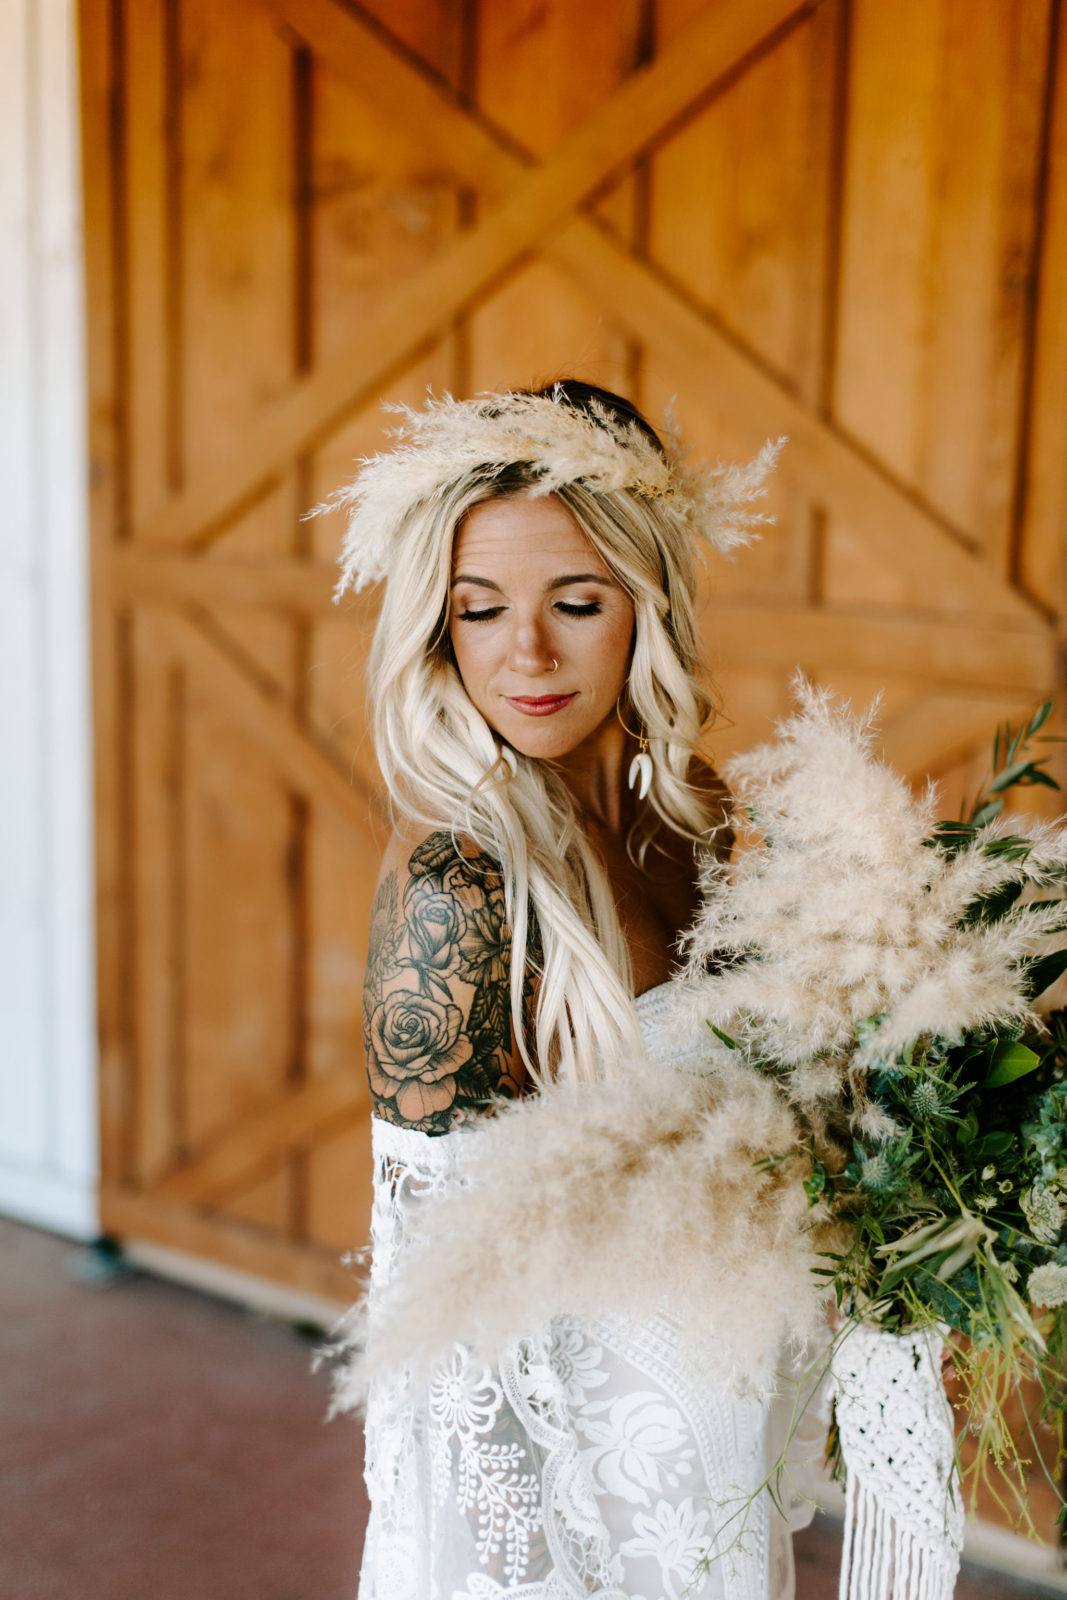 Local Embers & Co. Dallas Fort Worth Wedding Photography featured on Alexa Kay Events